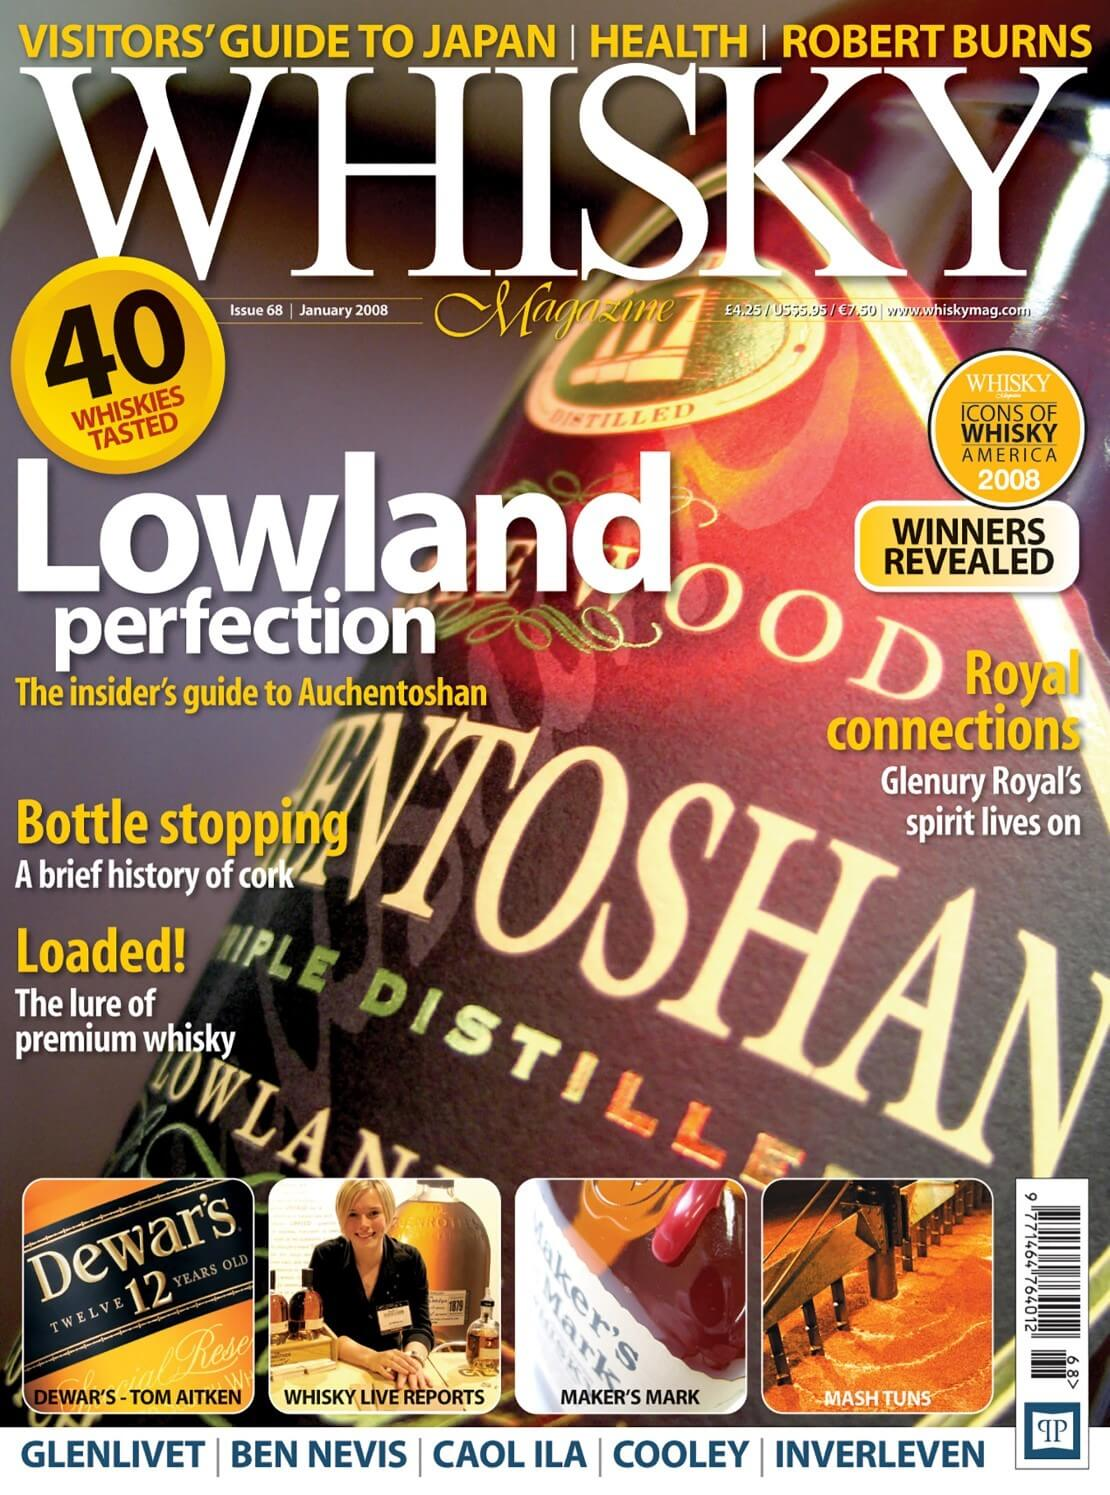 Lowland perfection - Auchentoshan History of the cork Premium whisky Glenury Royal Visitors' guide to Japan